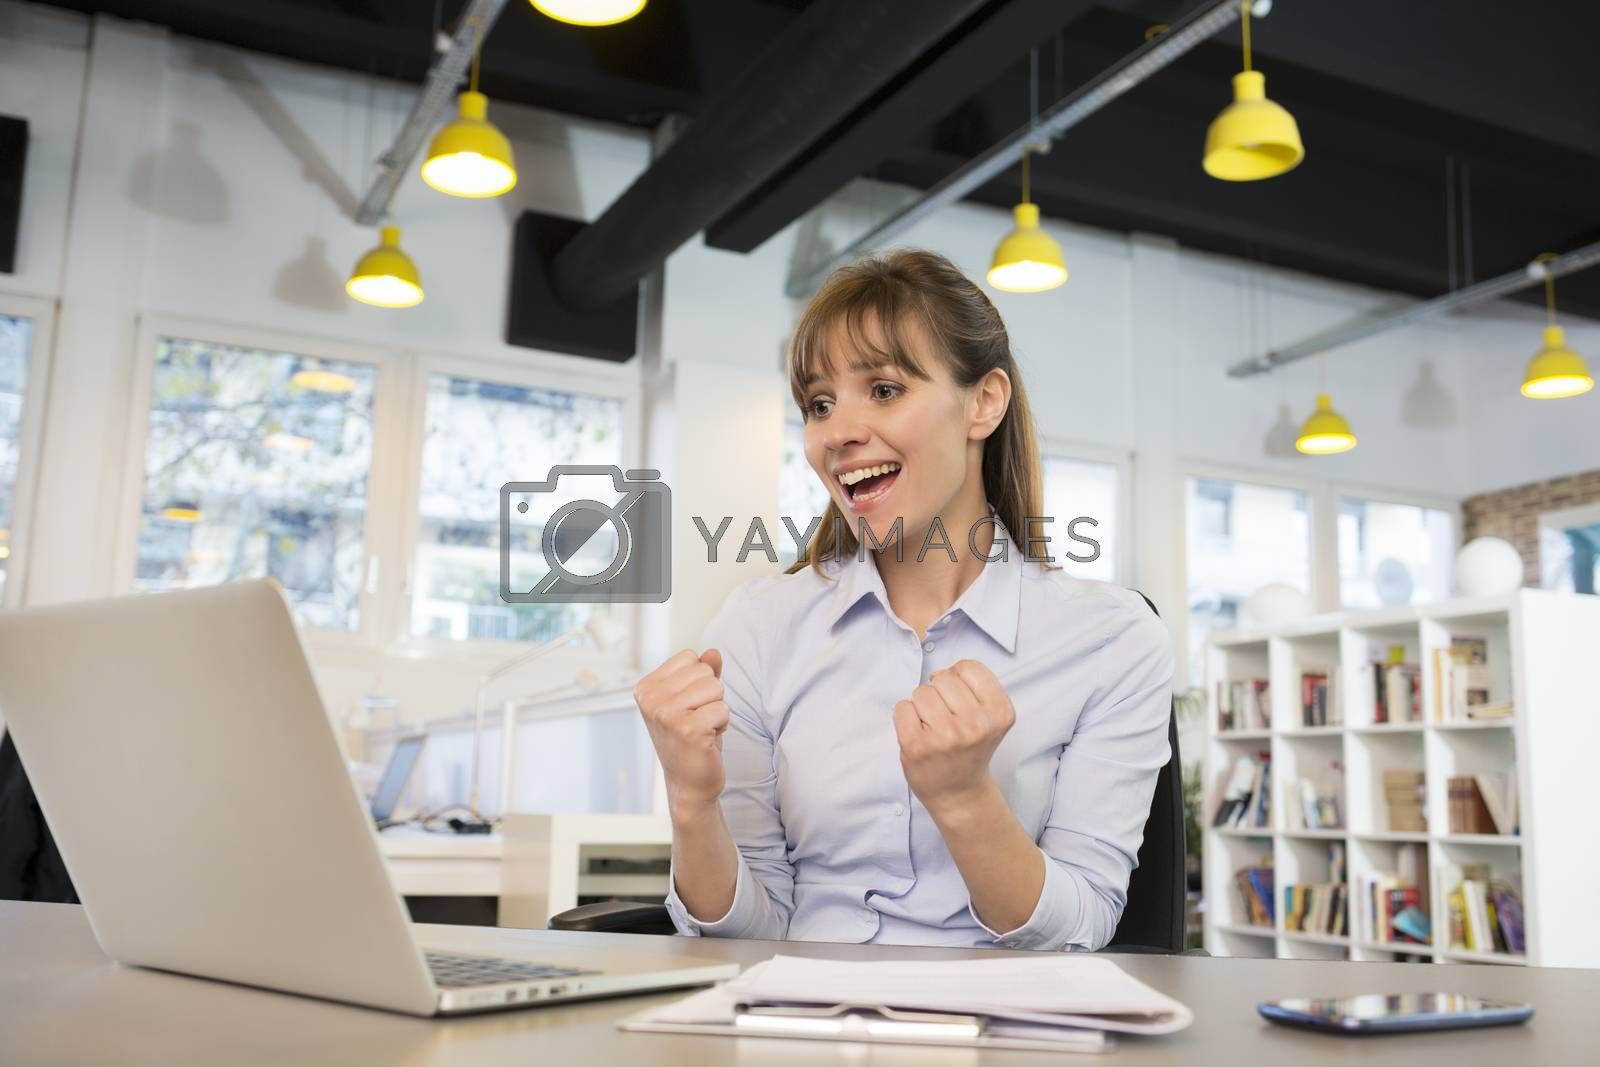 Smiling Business woman  cheerful desk satisfaction